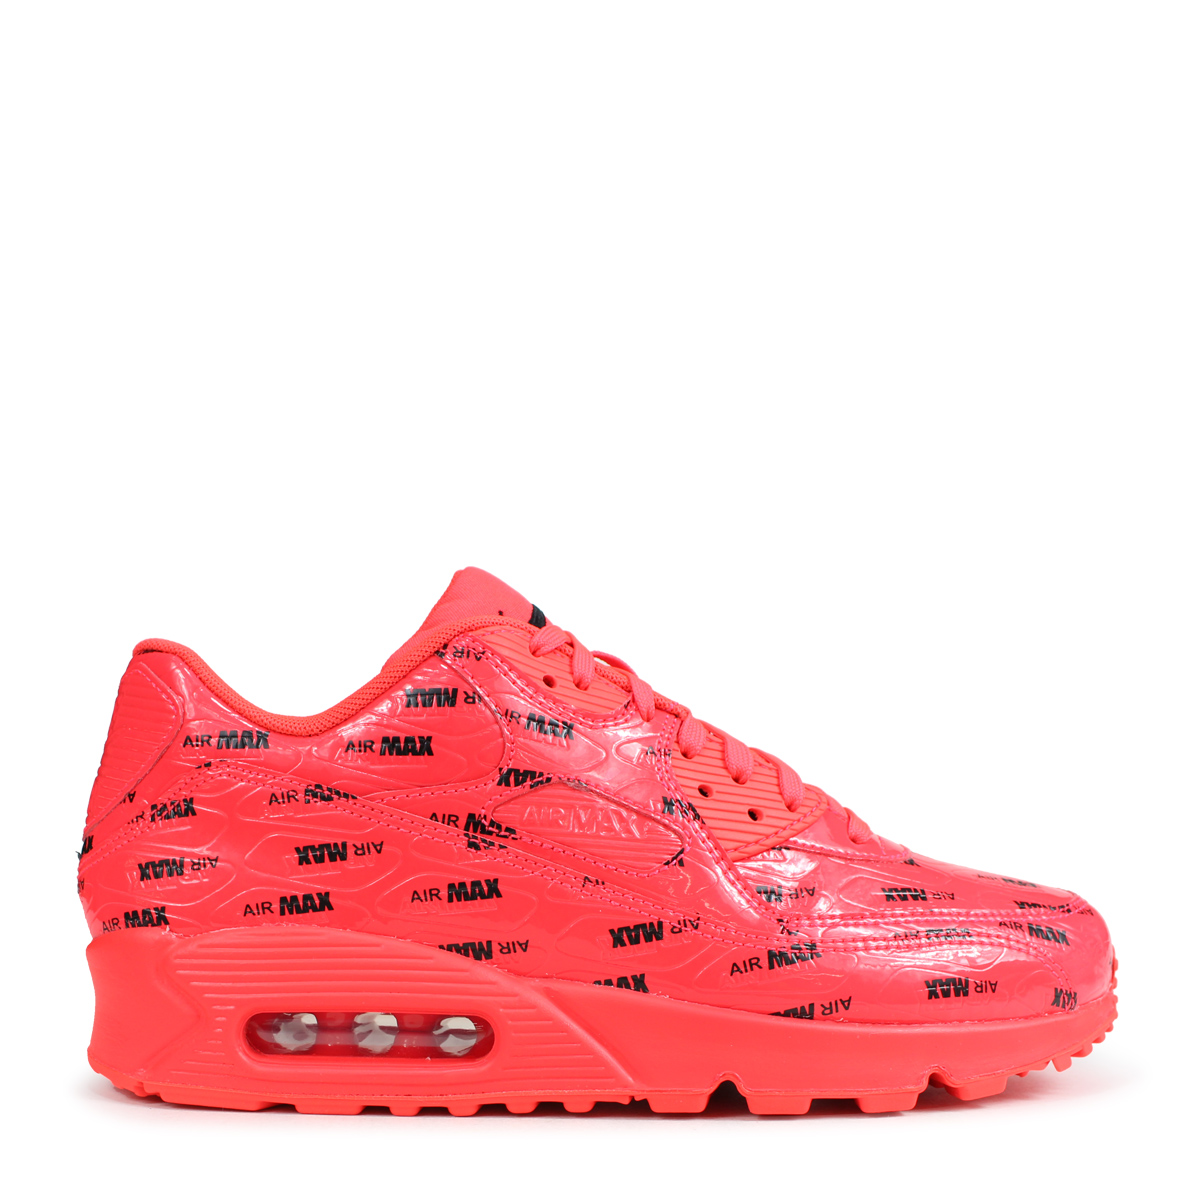 ALLSPORTS | Rakuten Global Market: NIKE NIKE Market: AIR MAX 90 PREMIUM Kie Ney AMAX 90 sneakers men gap Dis 700,155-604 red [load planned Shinnyu load in reservation product 9/11 containing] [189] 804025